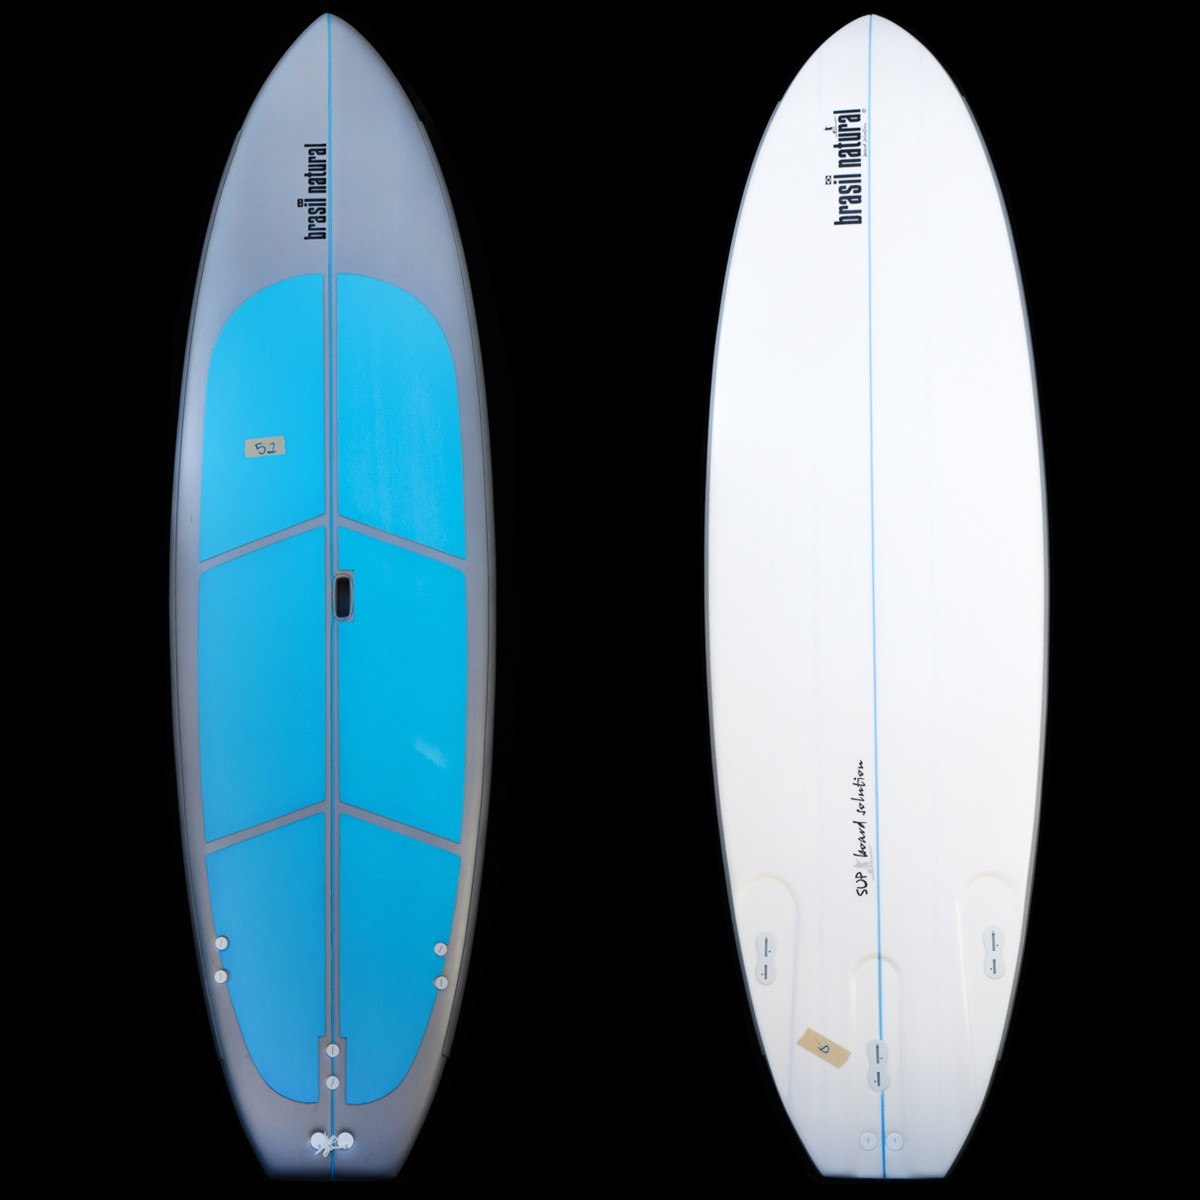 Prancha de stand up paddle 10 pés soft + kit remada - Outlet 52